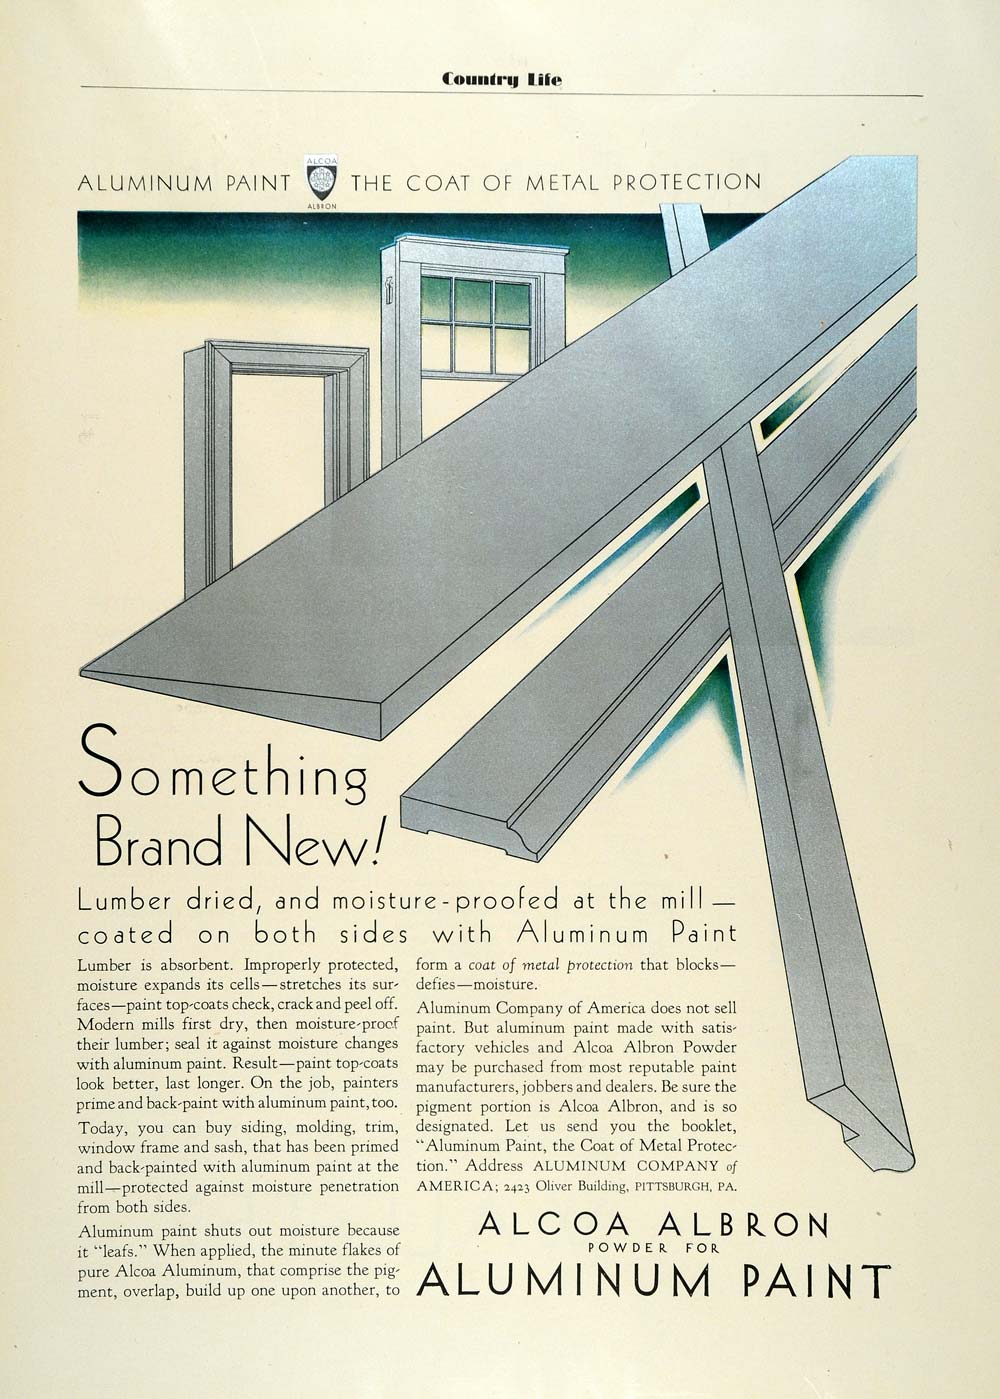 1931 Ad Aluminum Paint Alcoa Albron Powder Silver Ink Coat Metal Protection COL2